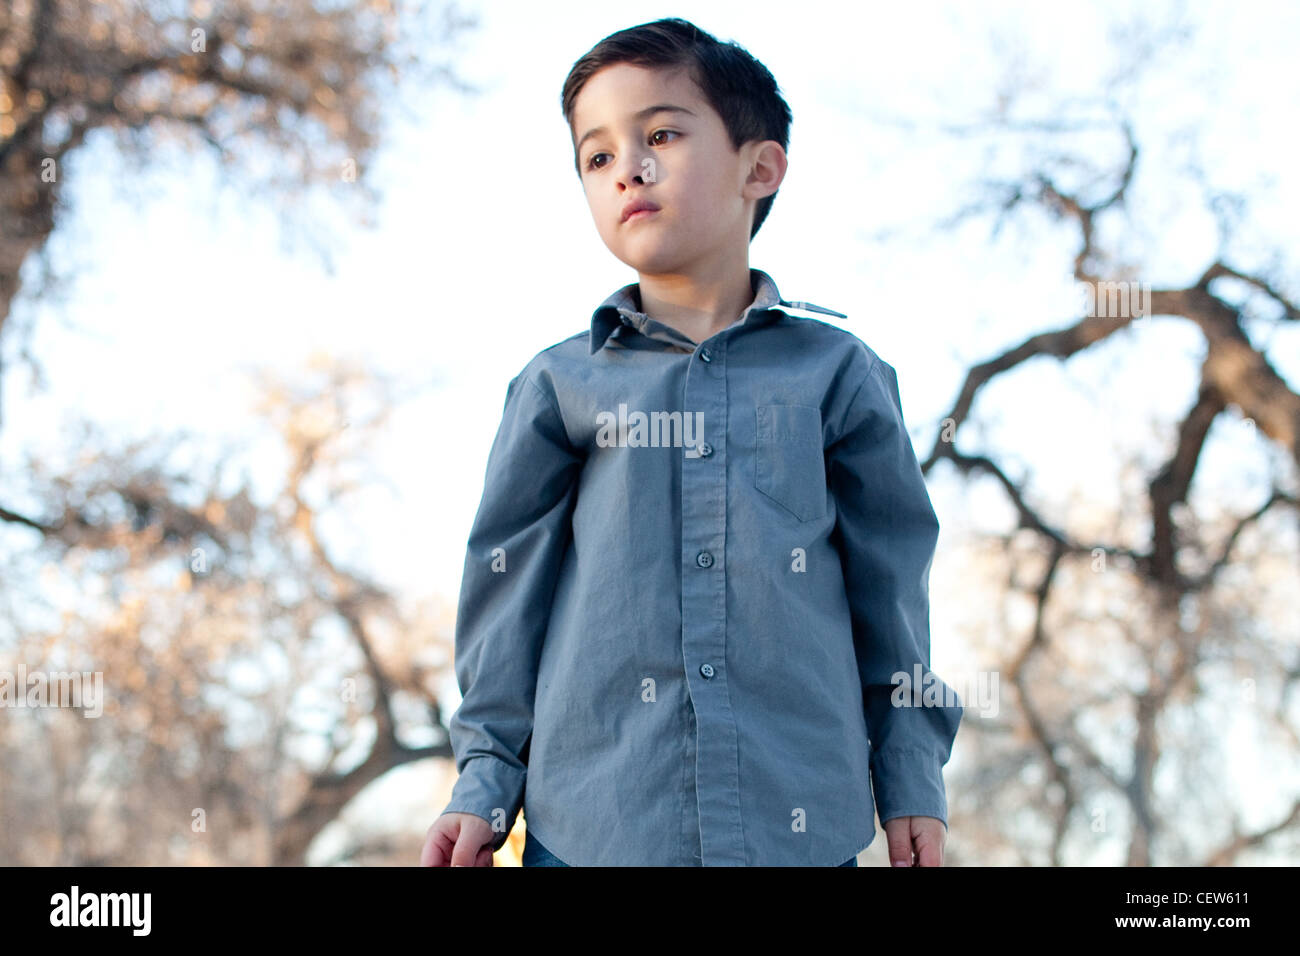 Portrait of a boy looking melancholic surrounded by nature - Stock Image